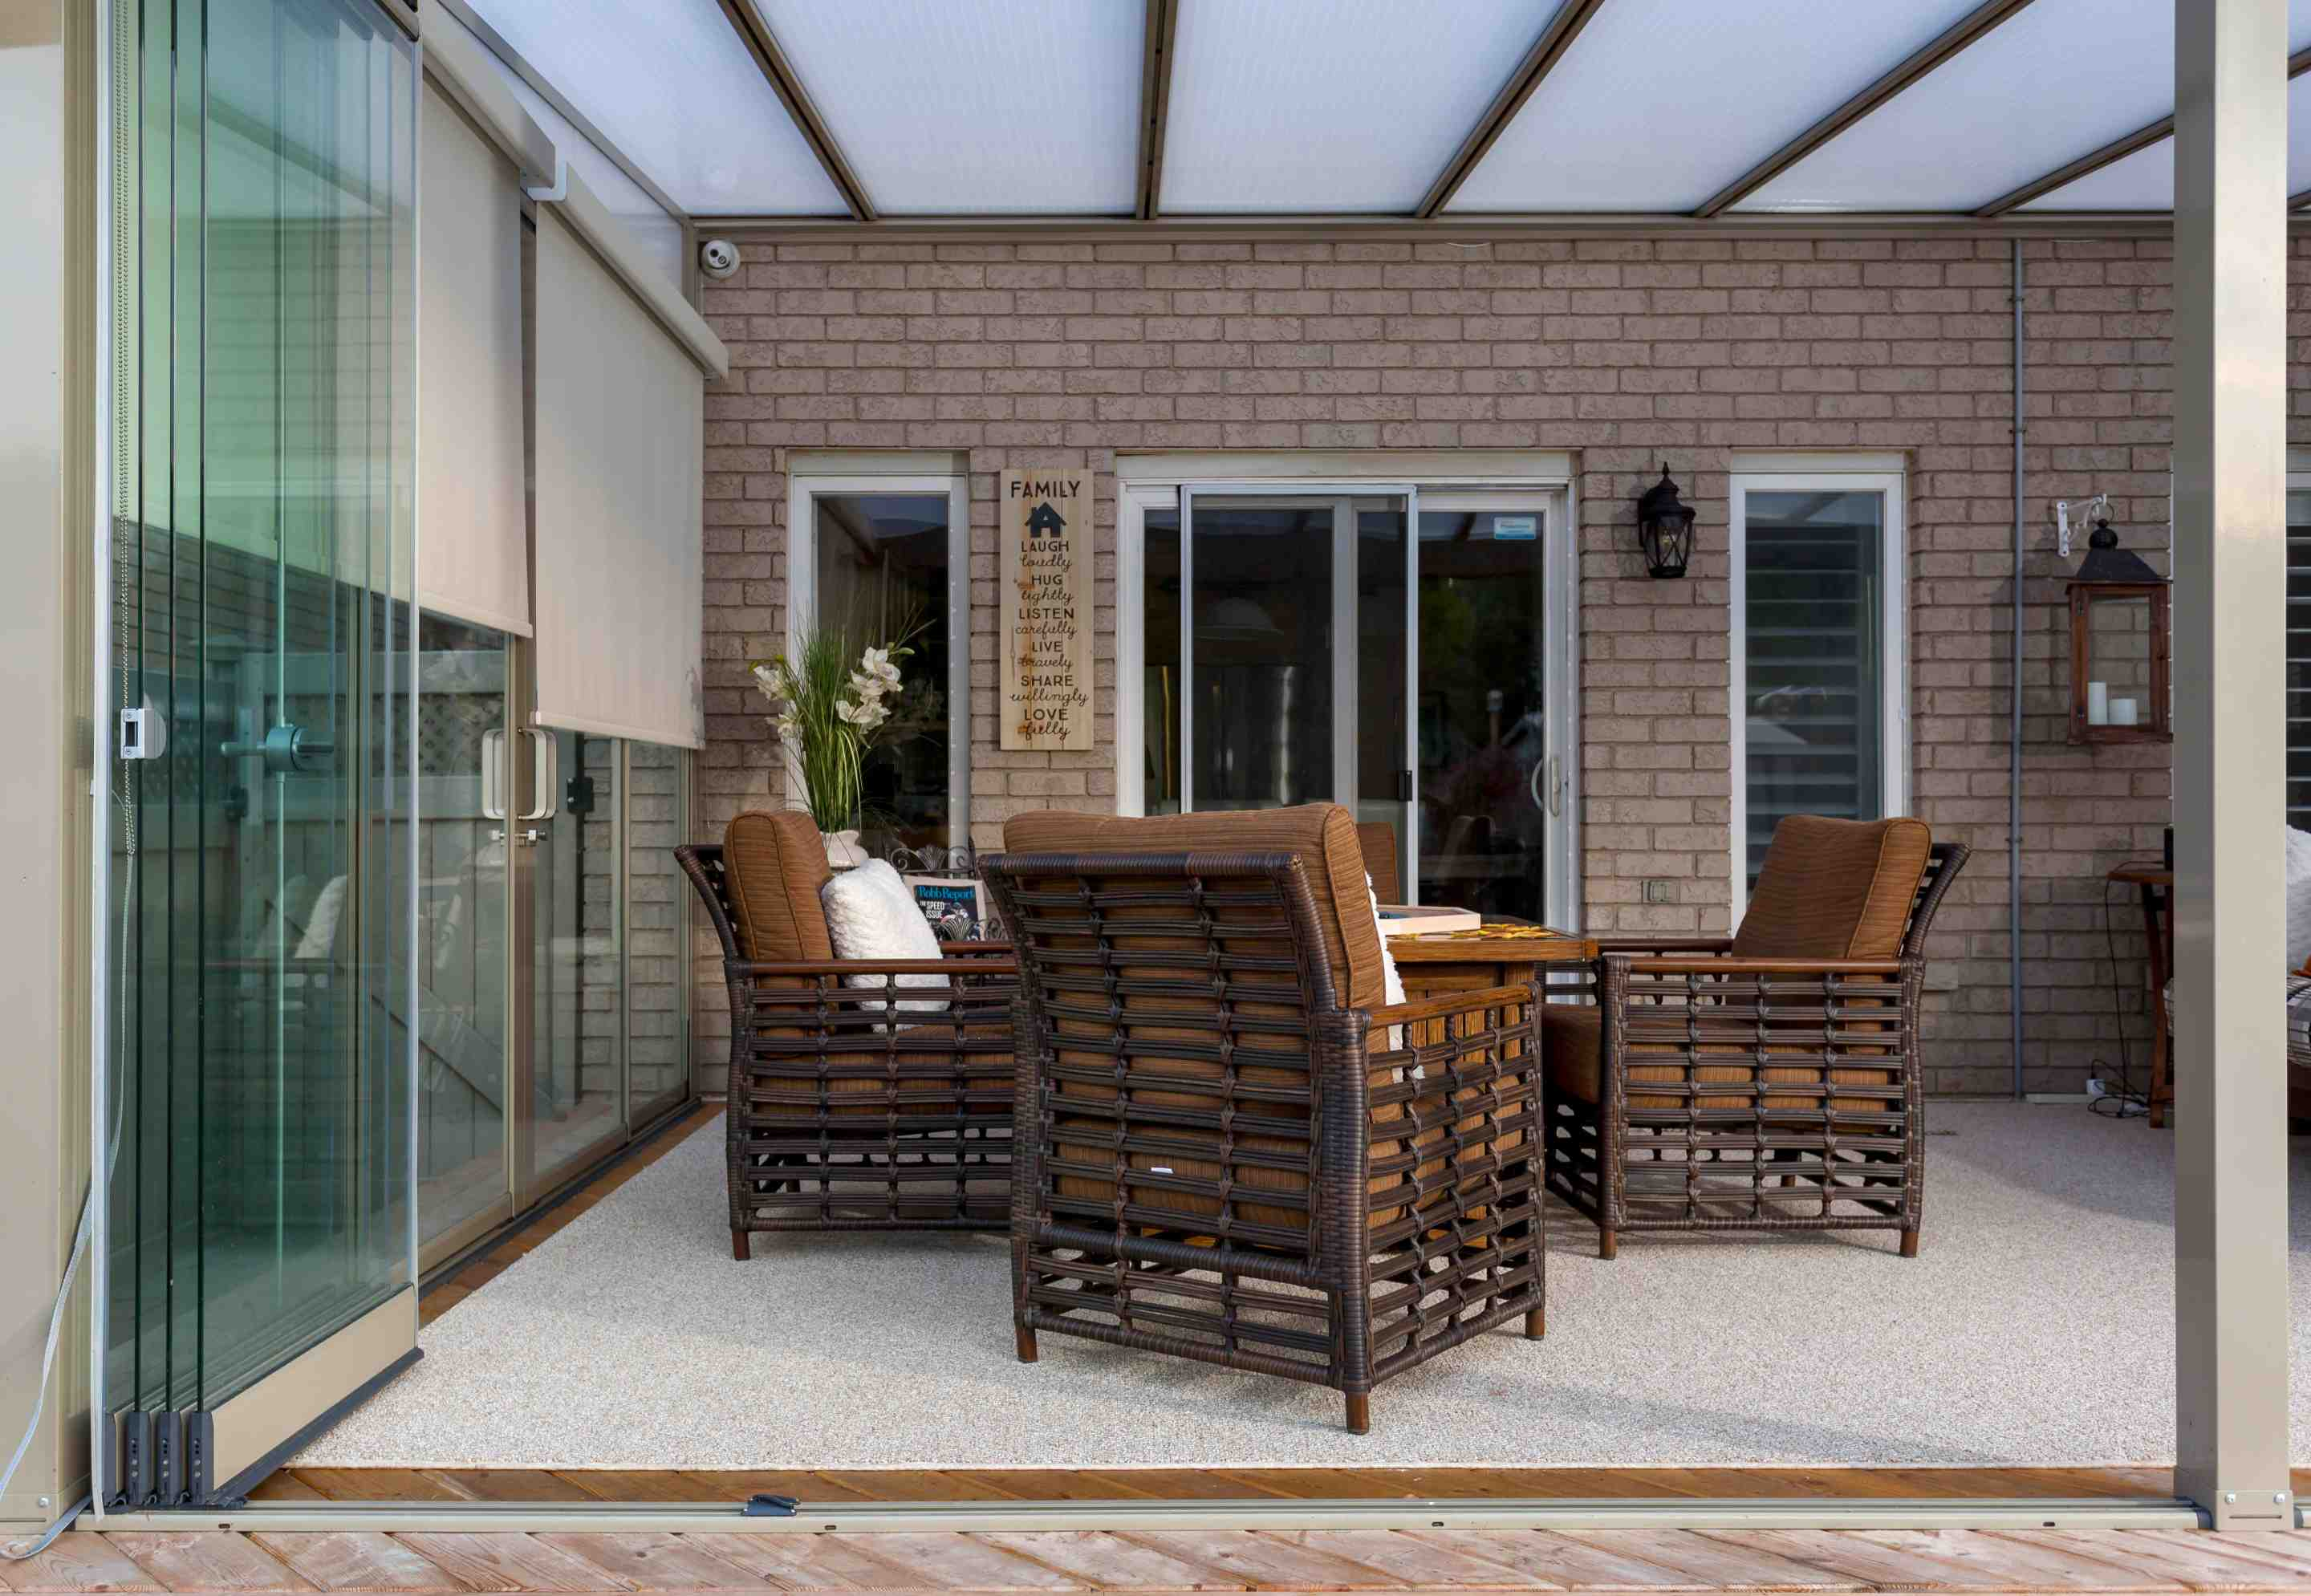 Lumon Canada, Sunroom toronto, sunroom hamilton, sunroom vancouver, retractable glass walls, design from finland, glass